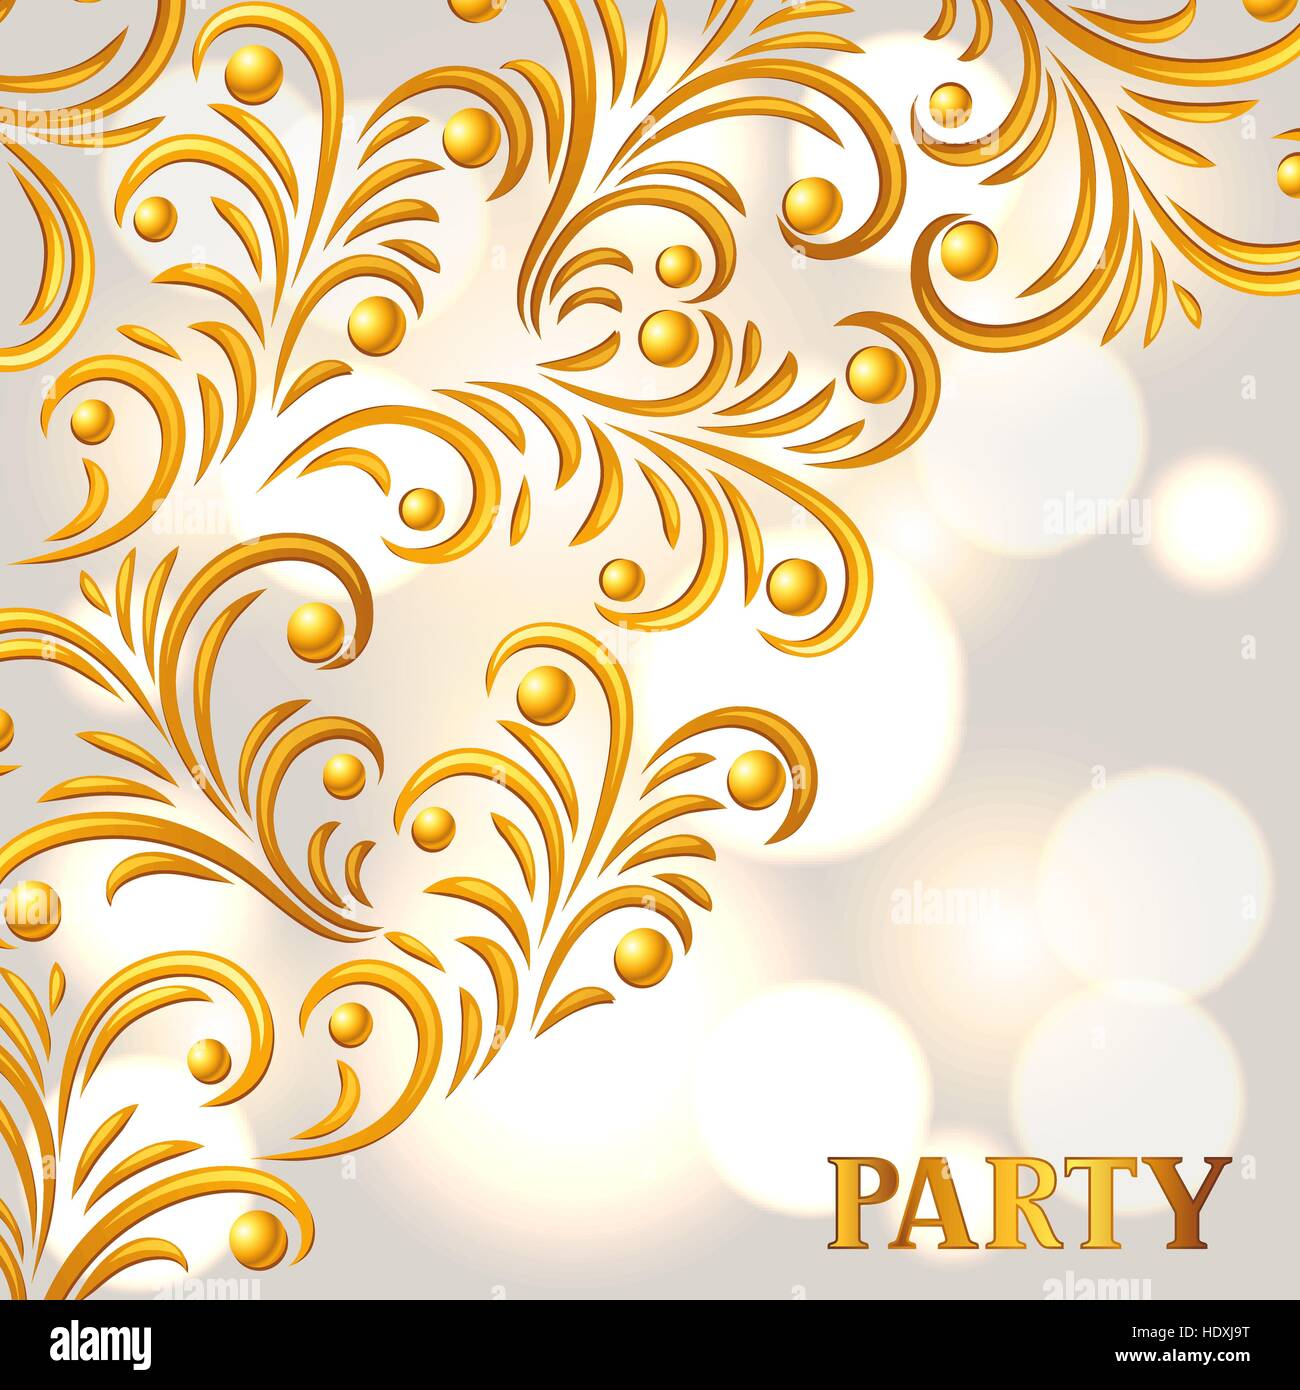 Celebration Party Background With Golden Ornament Greeting